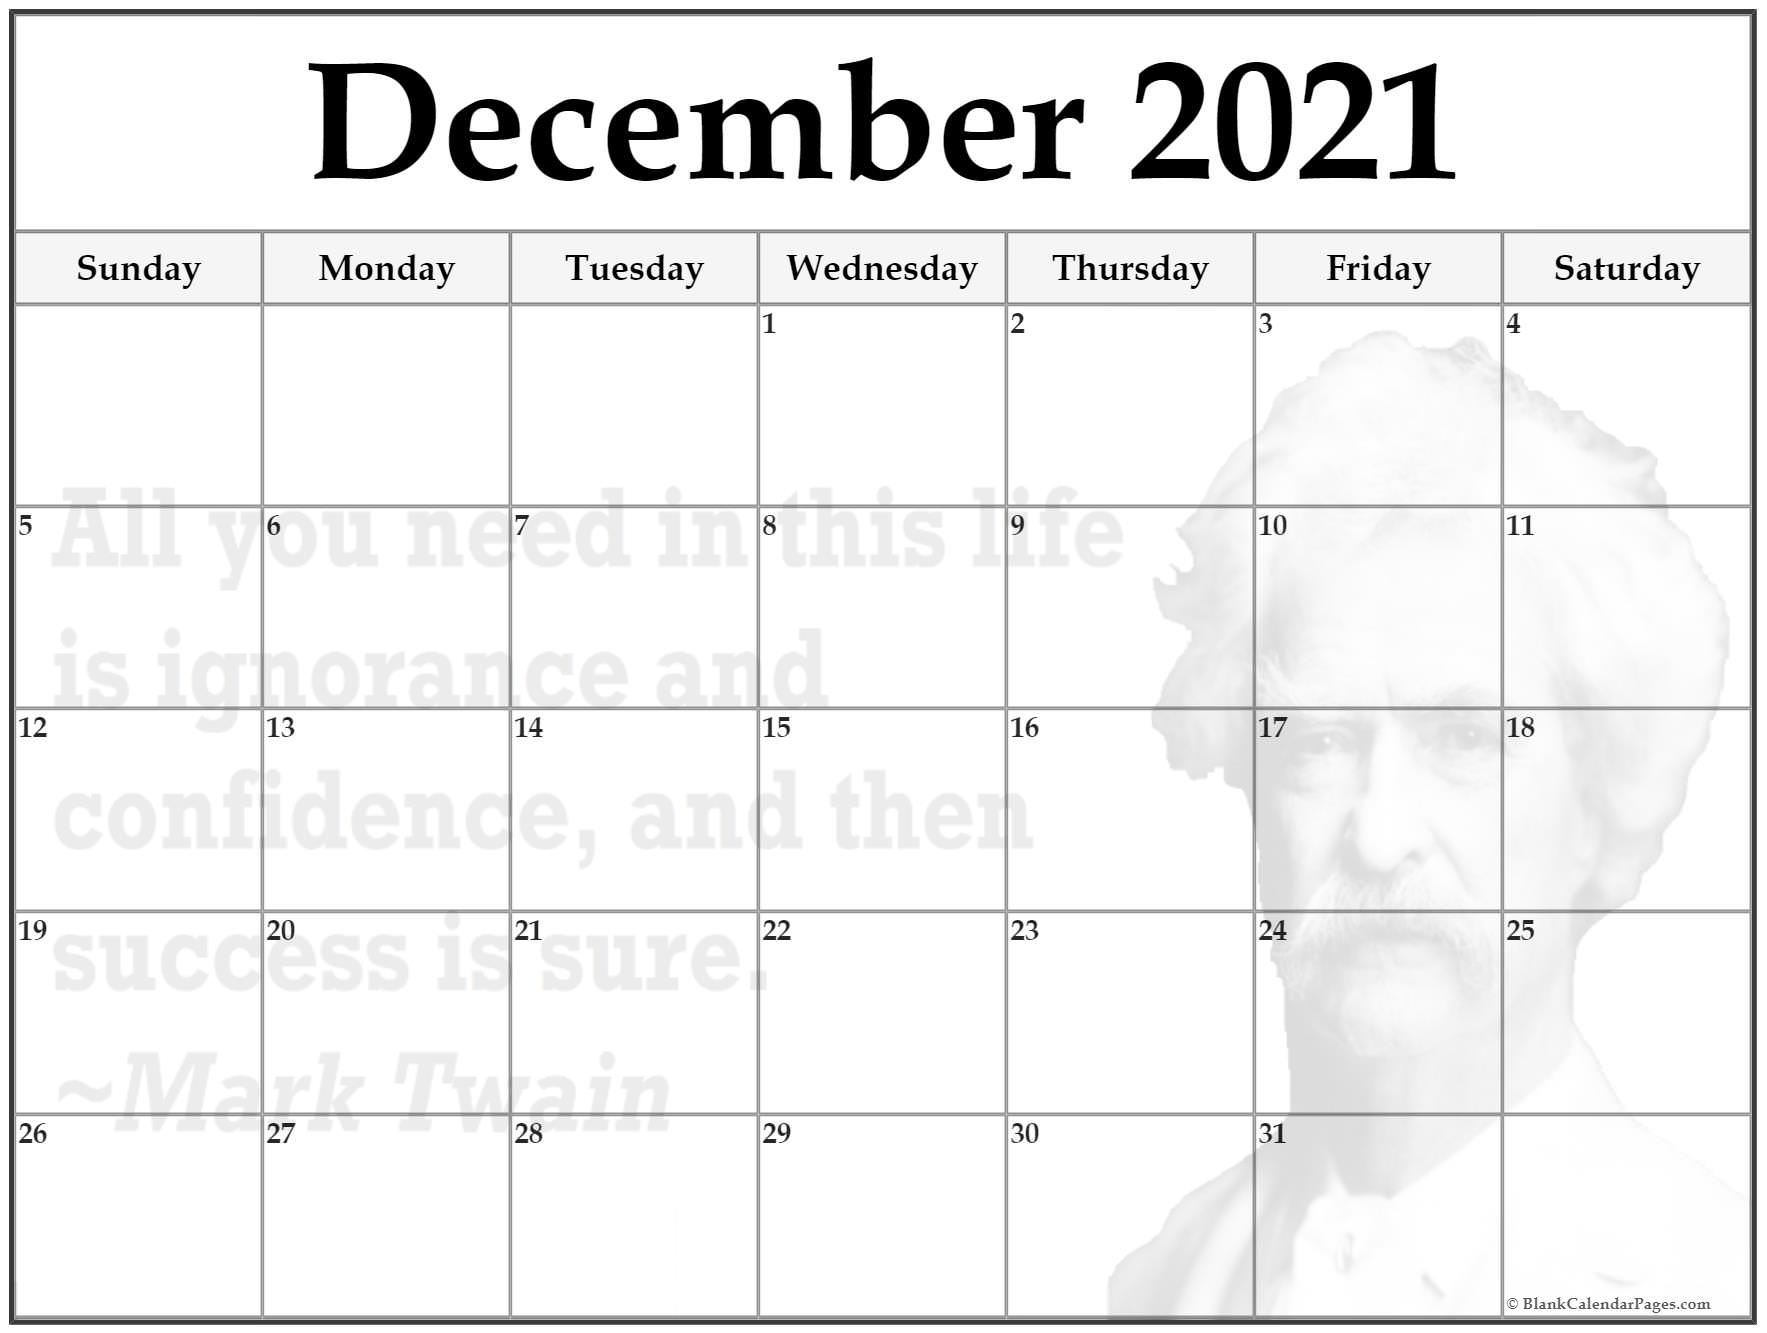 December 2021 with twain quotes. All you need in this life is ignorance and confidence, and then success is sure. ~Mark Twain